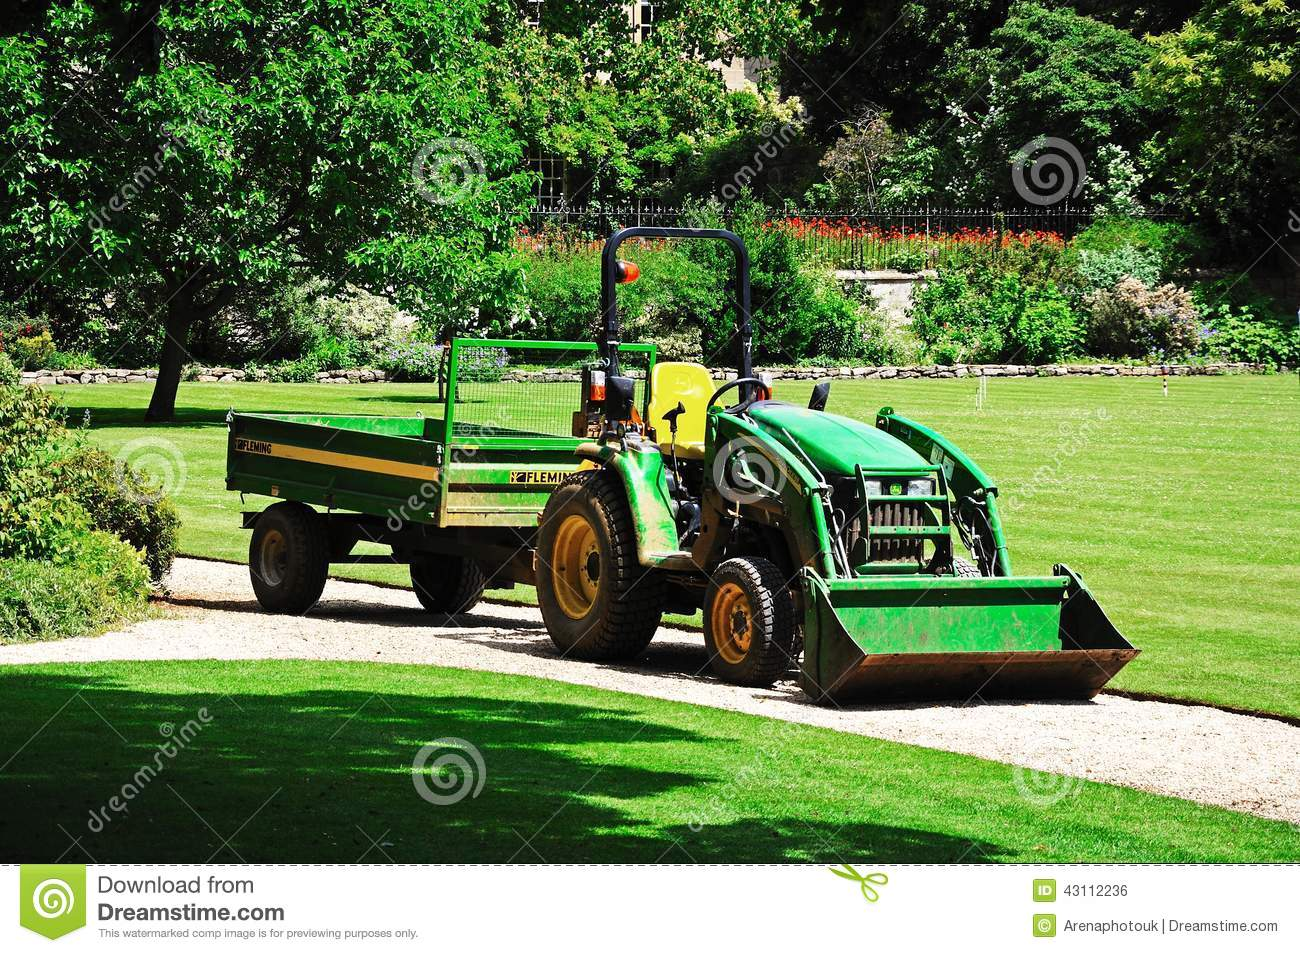 Up The Tractor Green Tractor With Bucket Cartoon : Green tractor hedge cutting and digger clearing a ditch